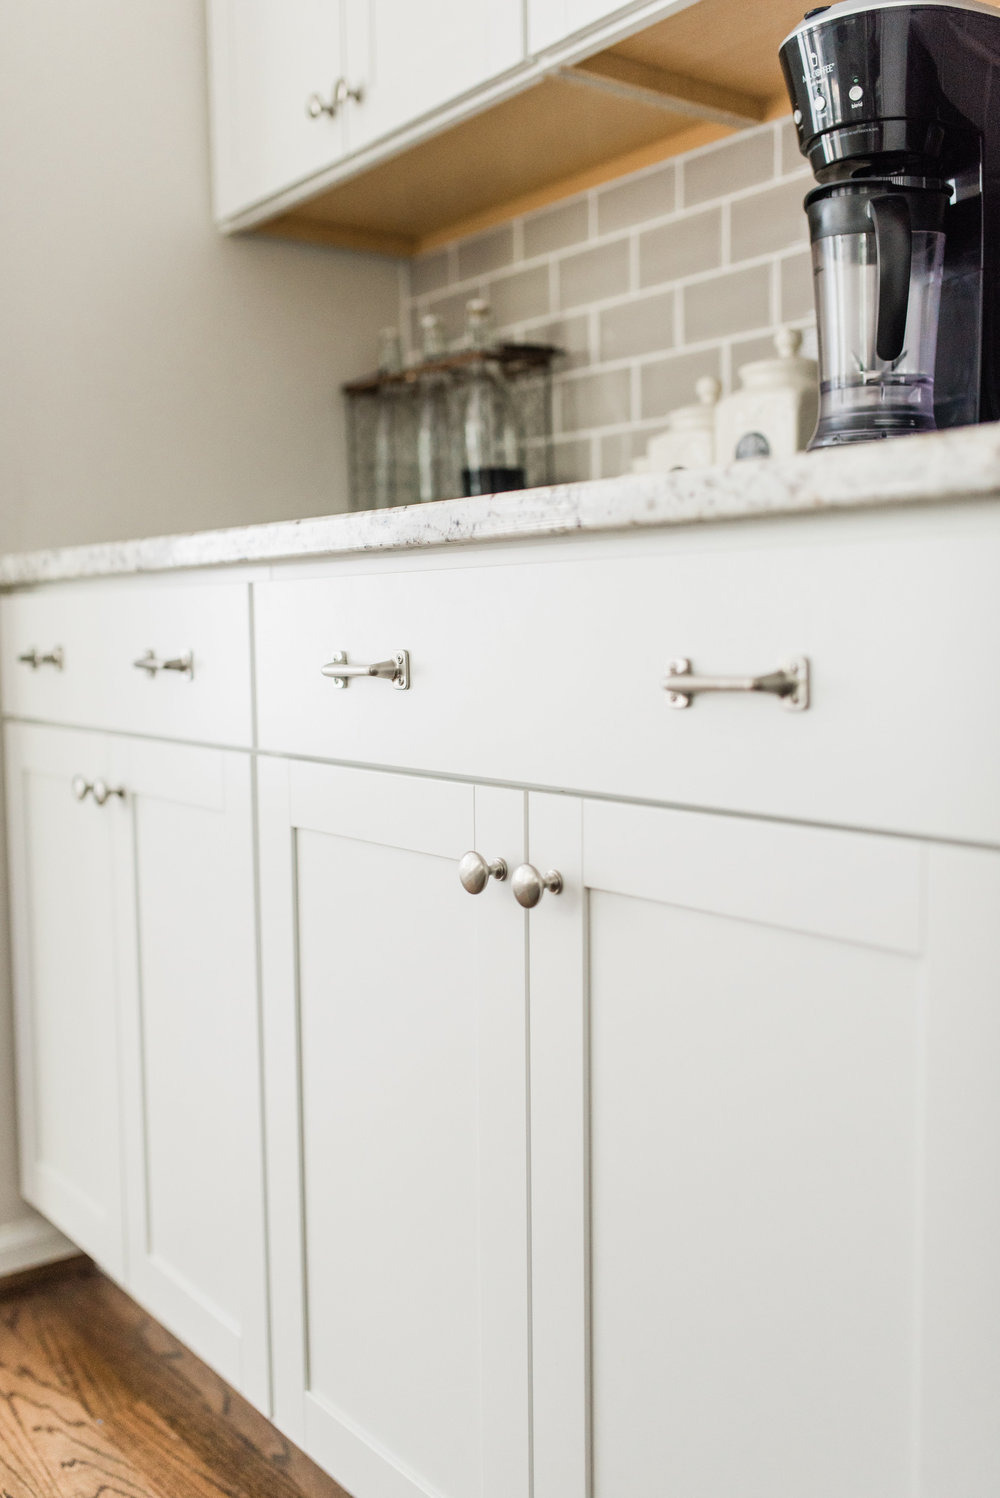 Unfinished Cabinet Doors Lowes Awesome Lowe S Stock Cabinets Review